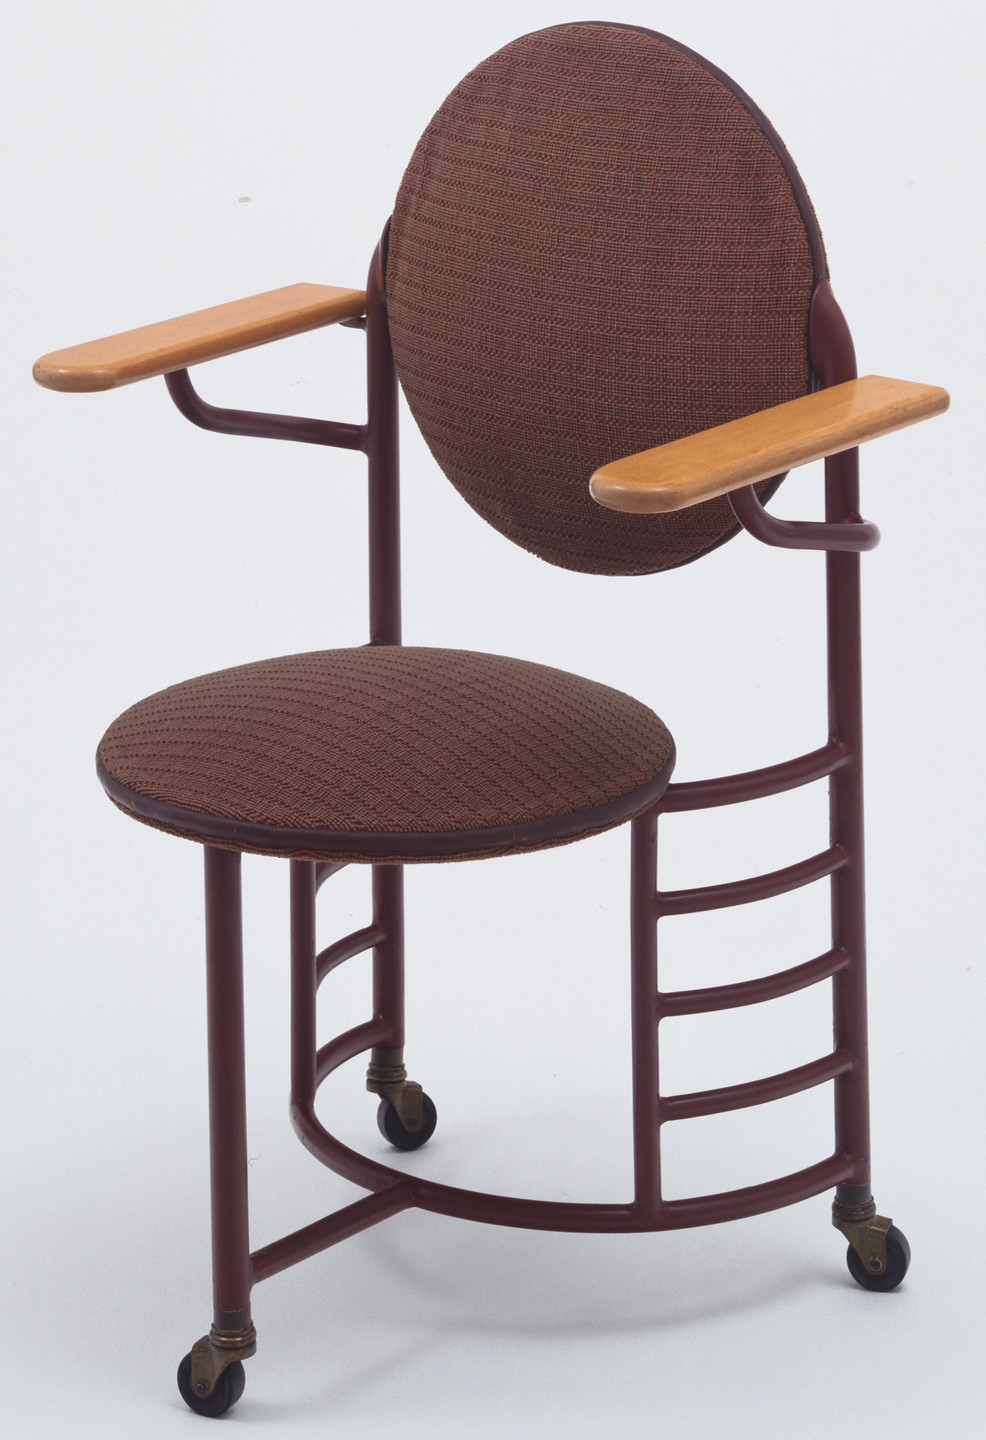 Frank Lloyd Wright. Office Chair. c. 1938